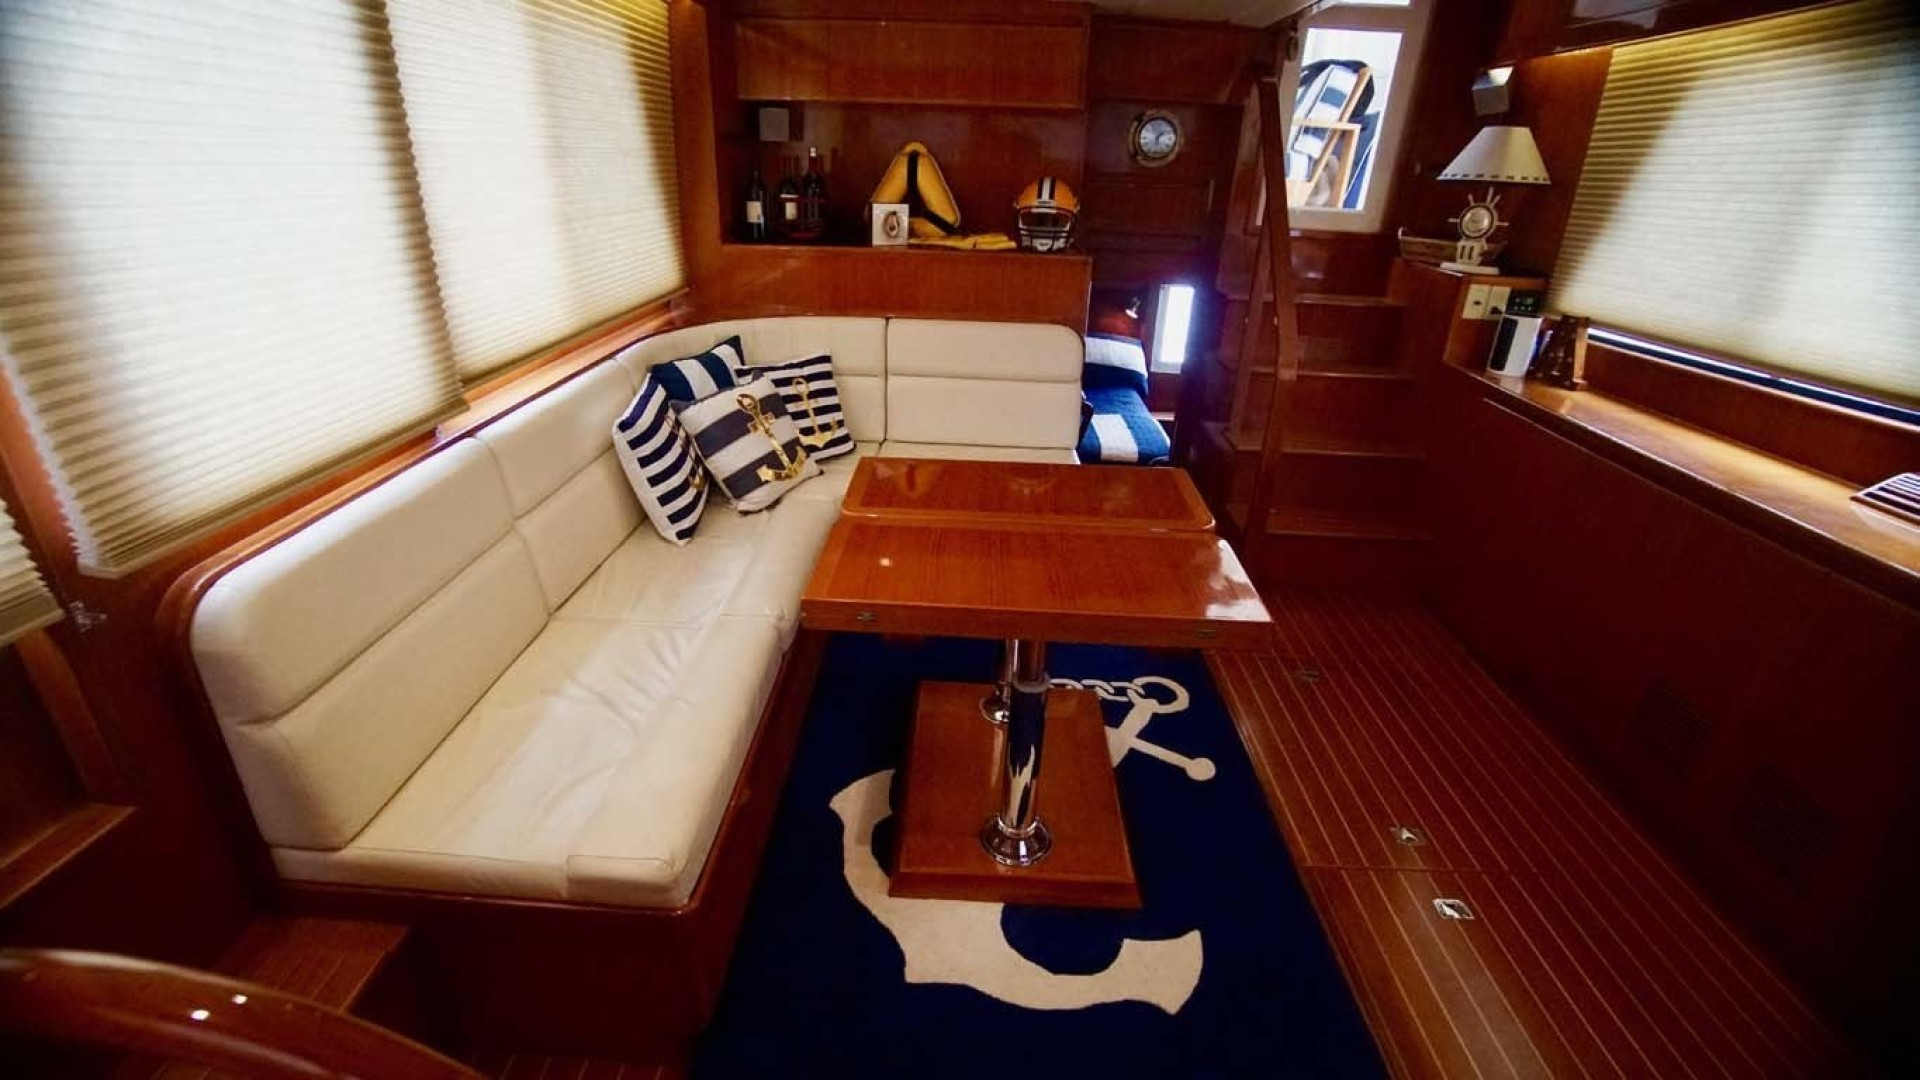 Novatec-48 Fast Trawler 2003-SINE DIE II Destin-Florida-United States-Salon Seating And Table-1360611 | Thumbnail